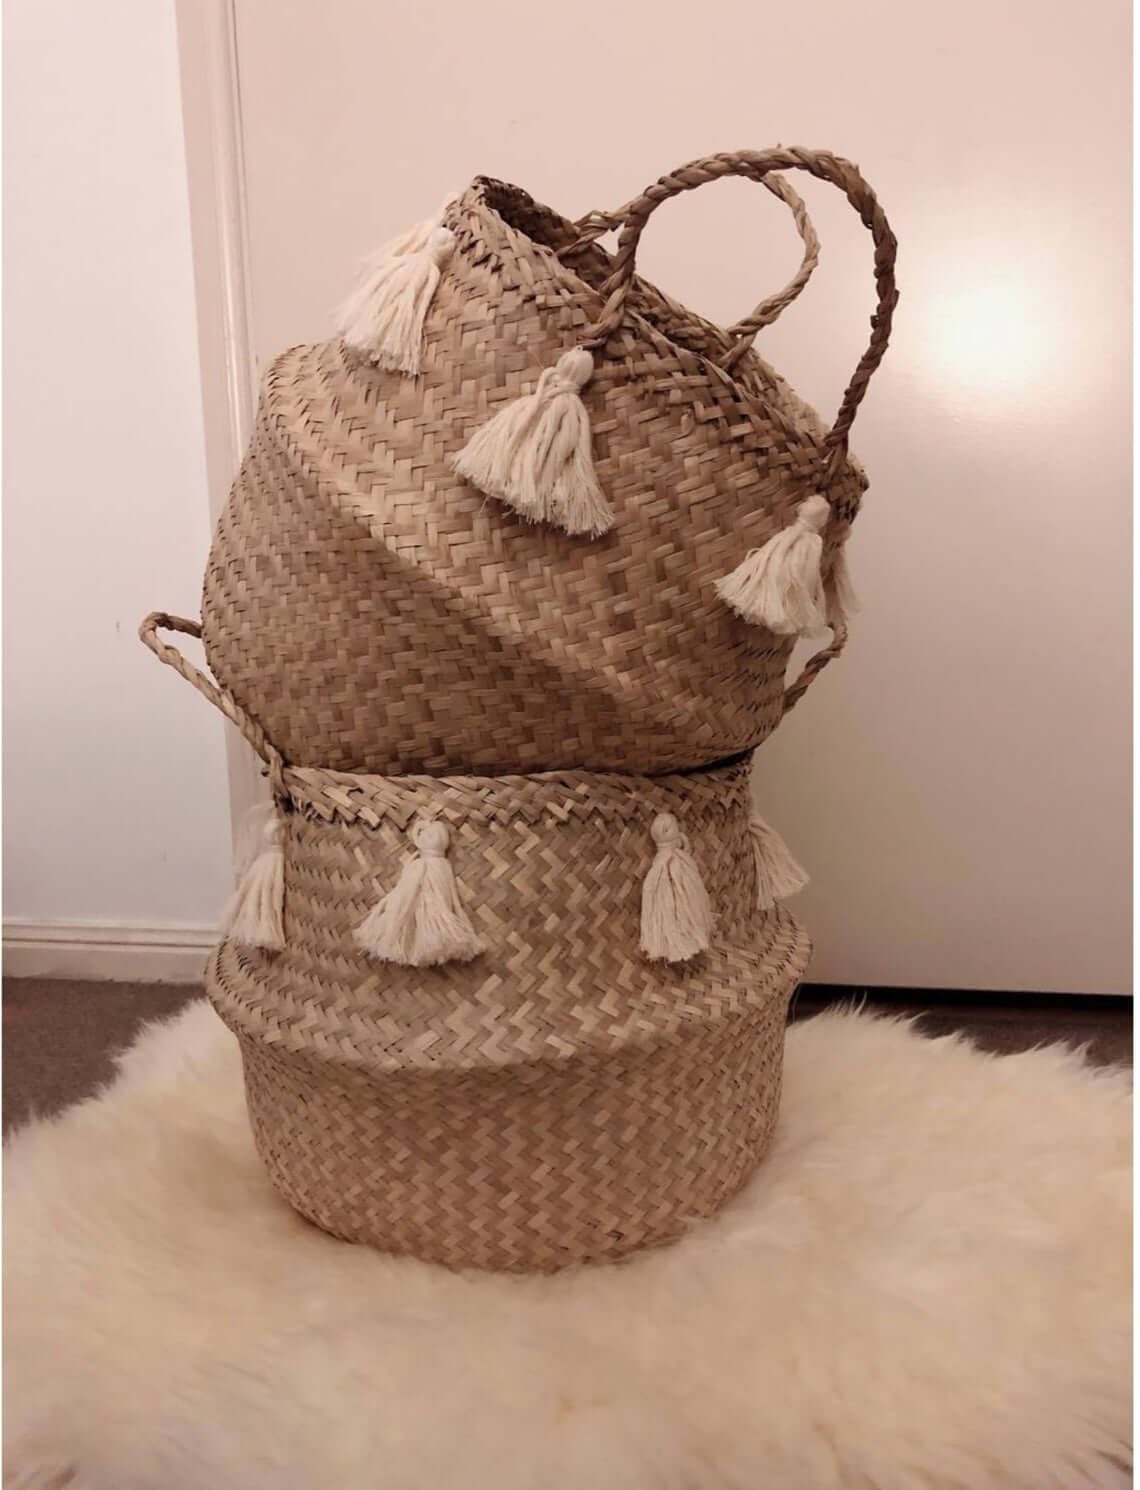 Medium Seagrass Belly Basket with Tassels